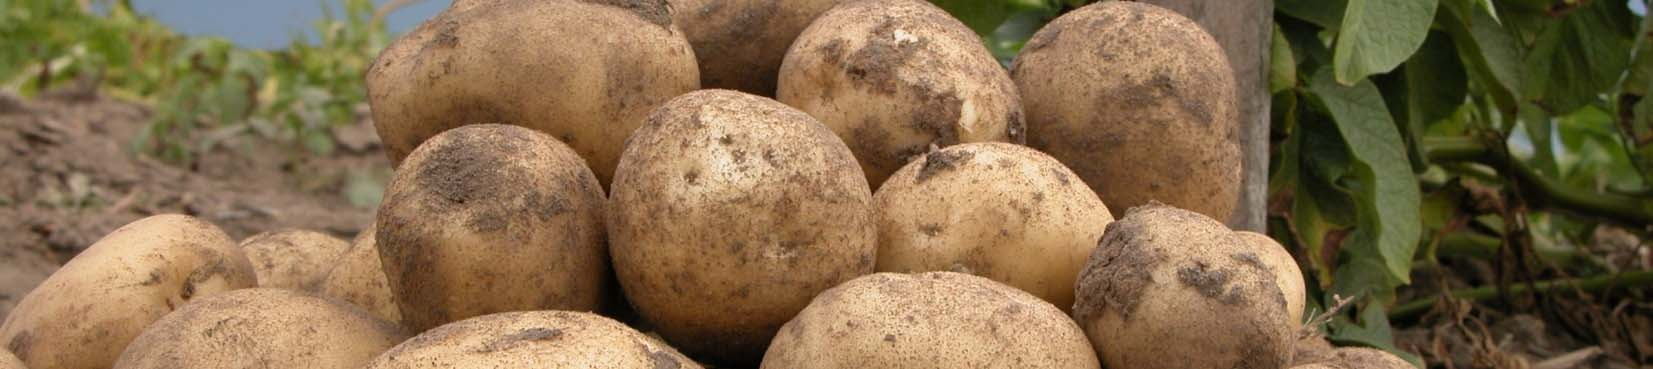 Growing Potatoes in Your Home Garden A Guide to Growing Potatoes In Your Home Garden Kelly A. Zarka, Donna C. Kells, David S. Douches and C.